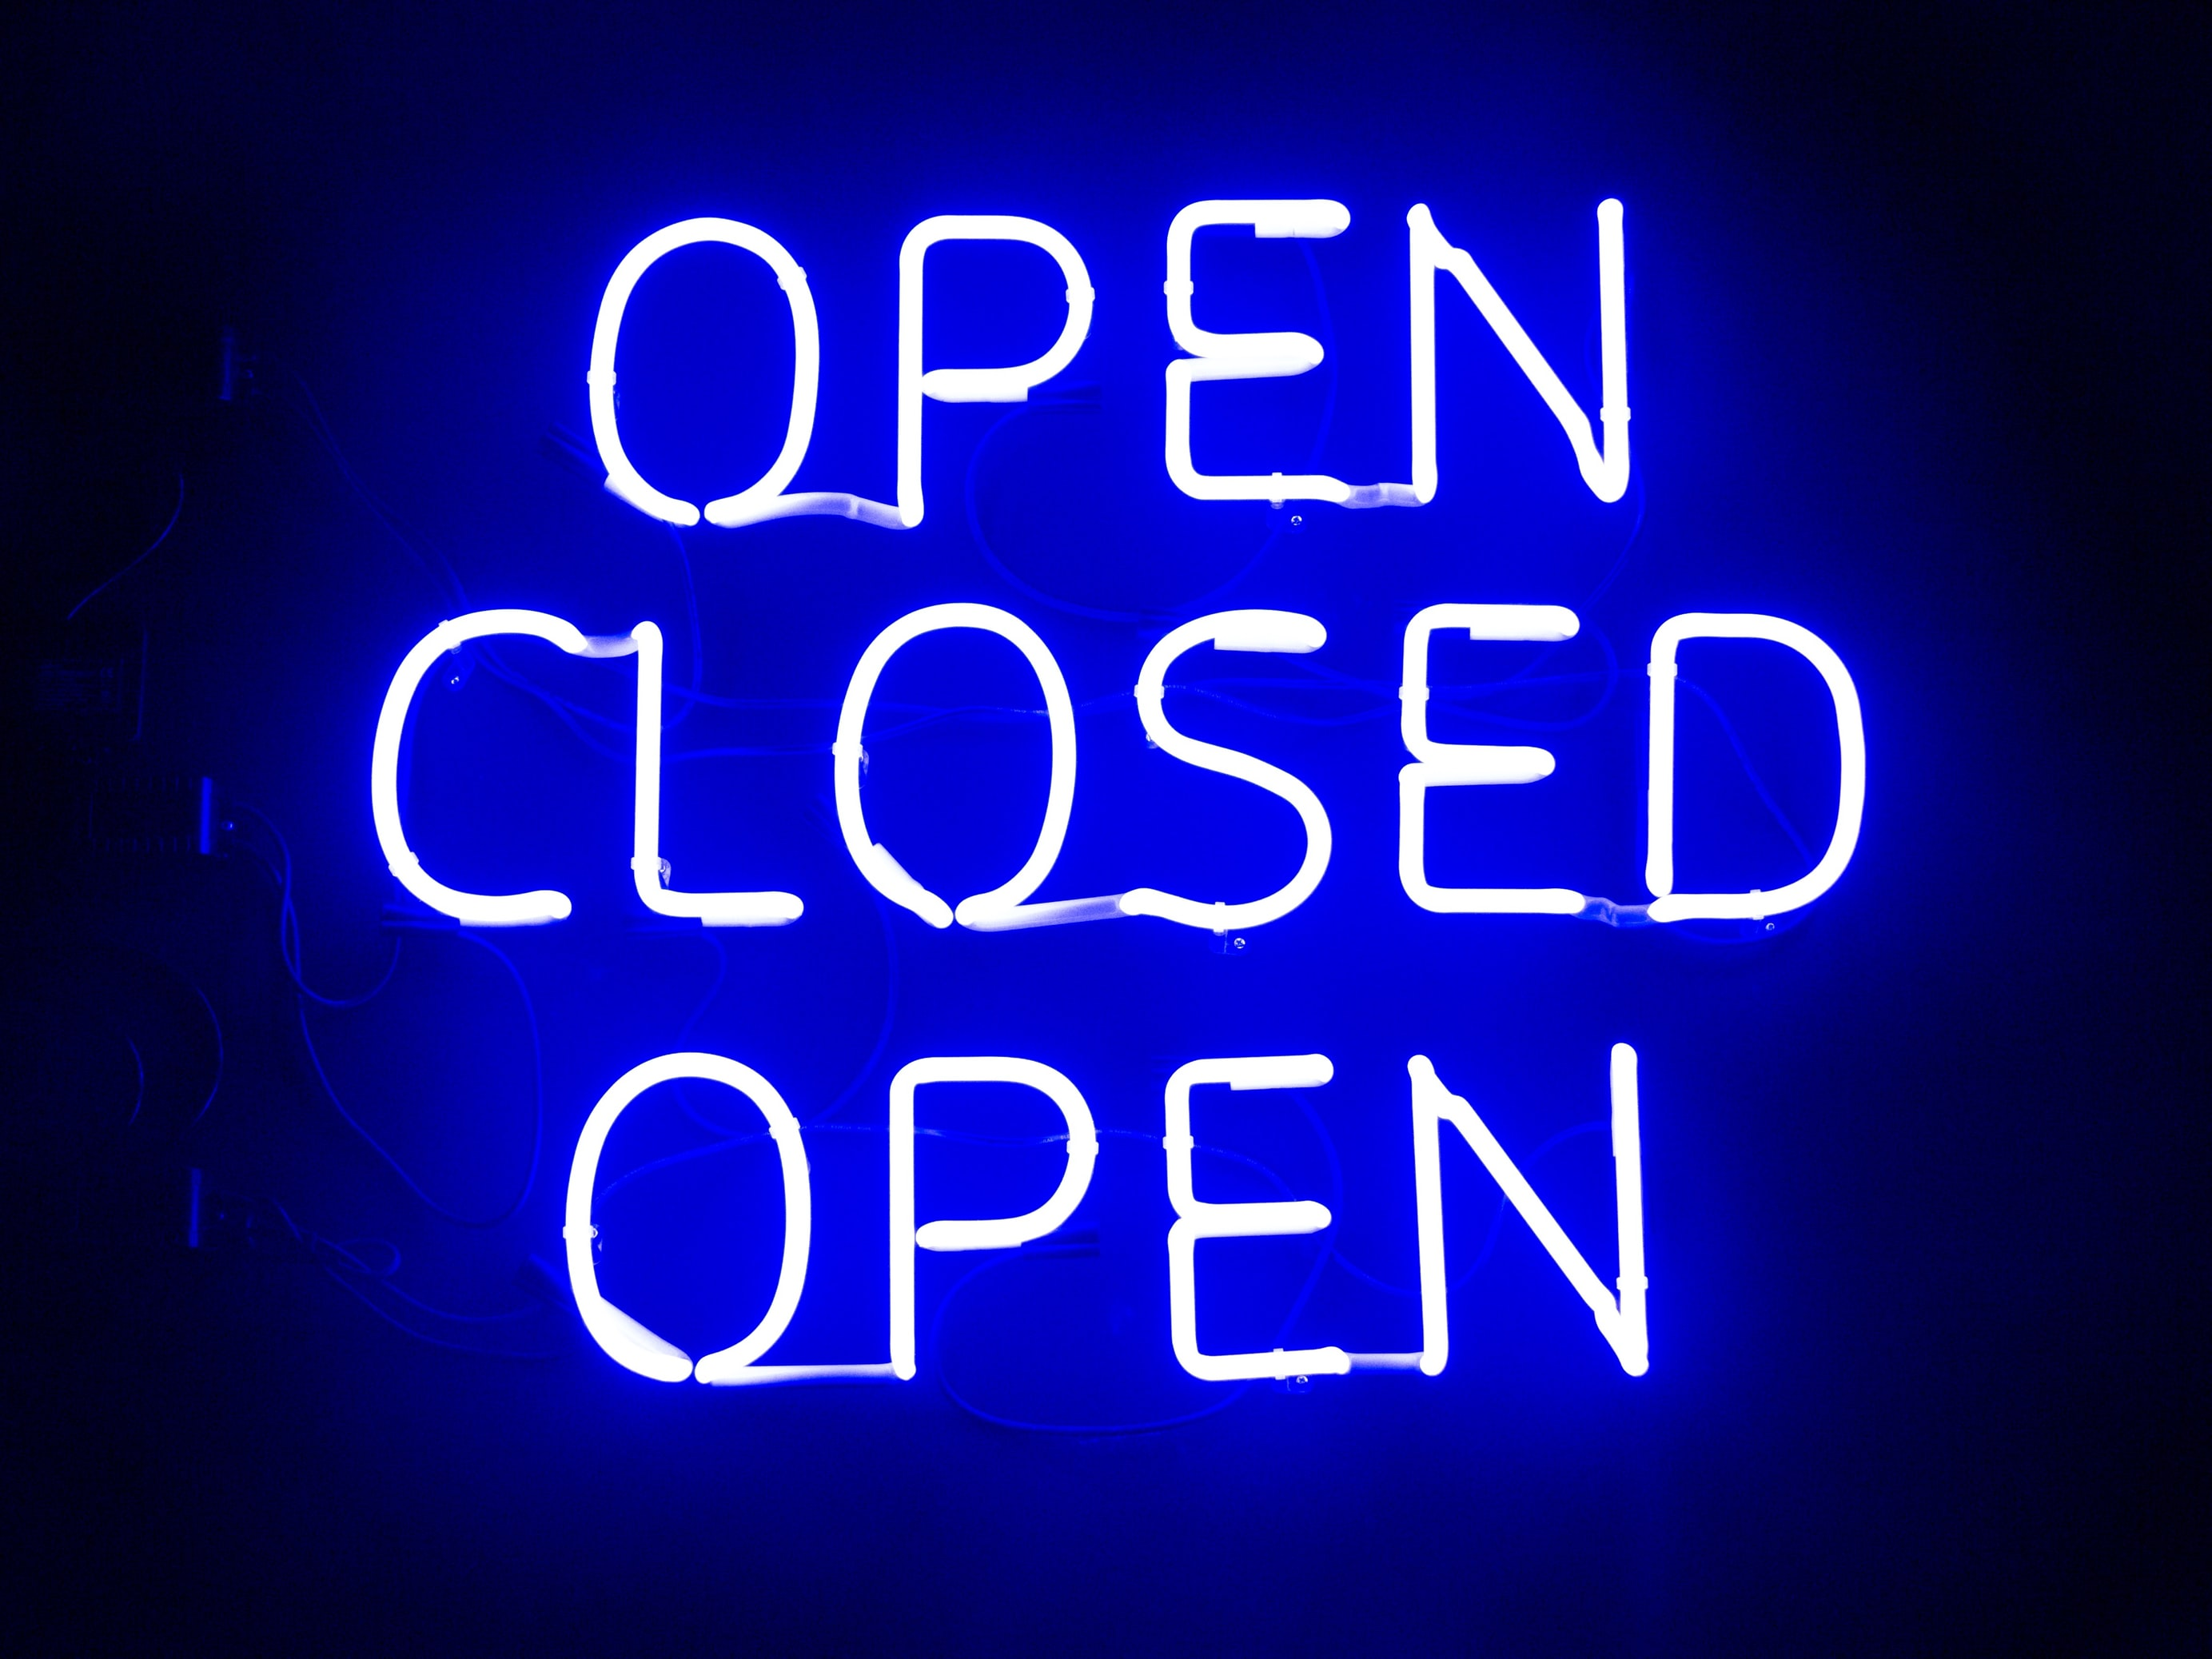 Blue neon sign of the words open closed and open on a black background